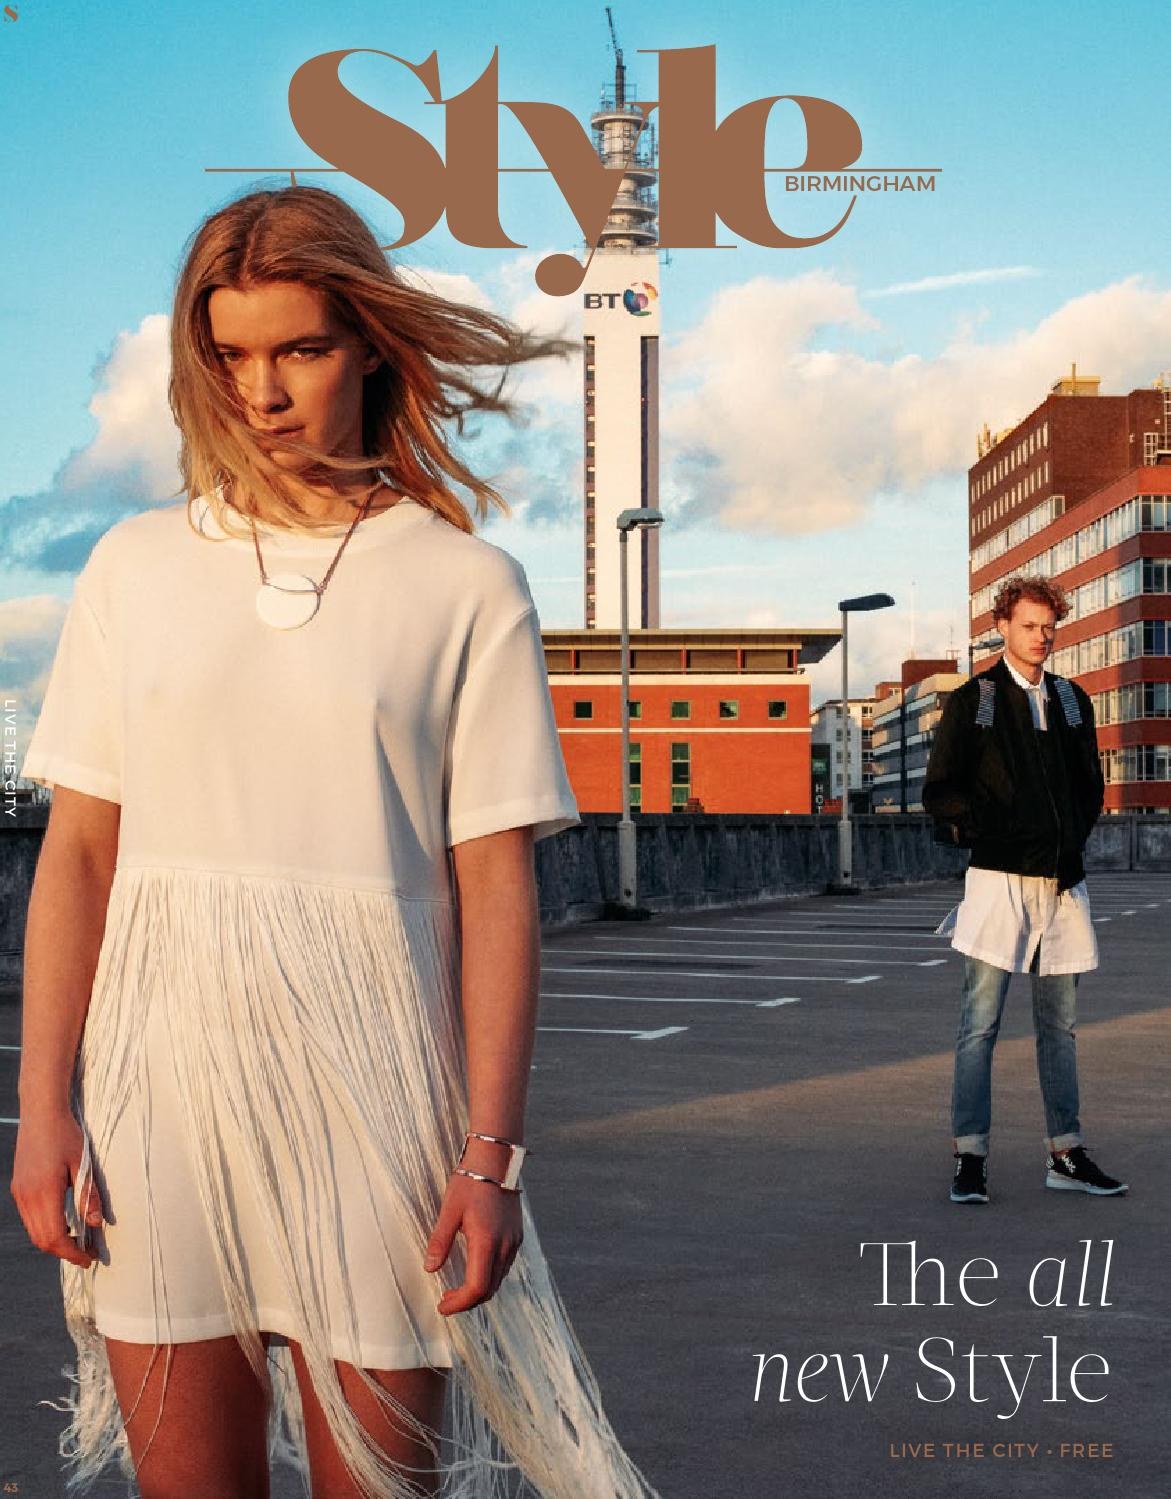 cead55836e2 Style Birmingham - Issue 43 by RileyRaven - issuu